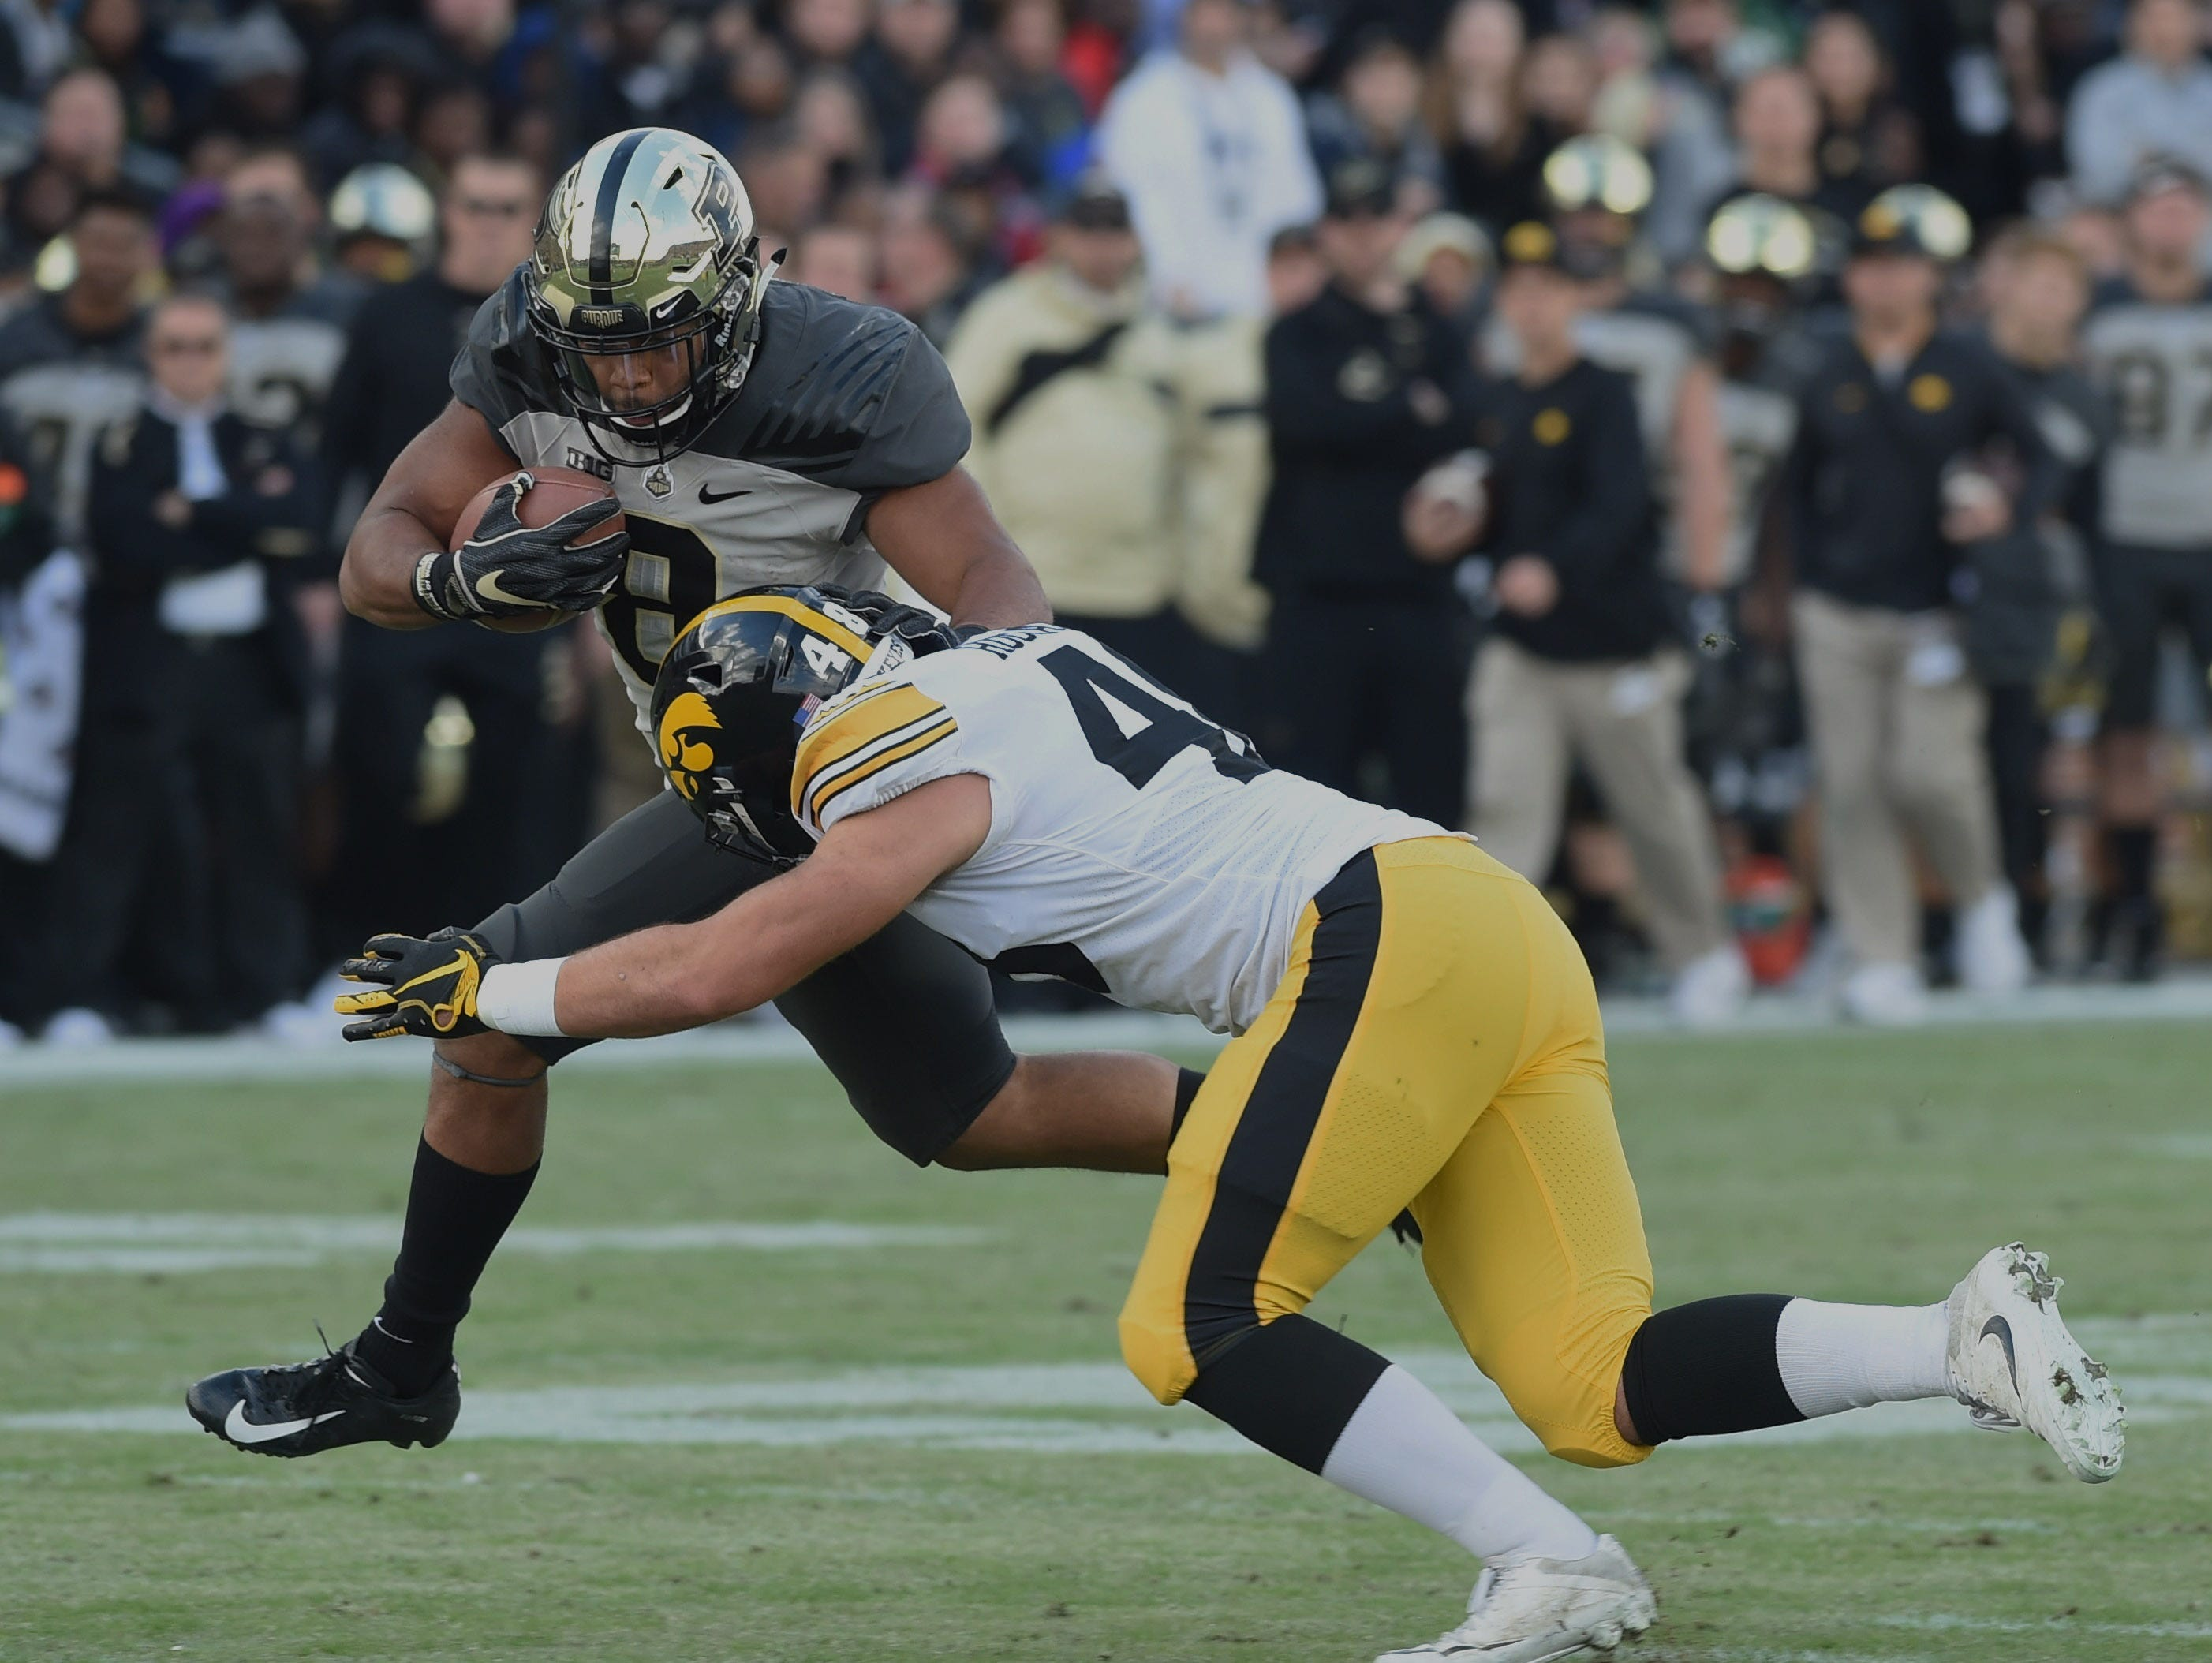 Fans had a picture perfect football afternoon Saturday as the Boilers defeated the Iowa Hawkeyes. Markell Jones